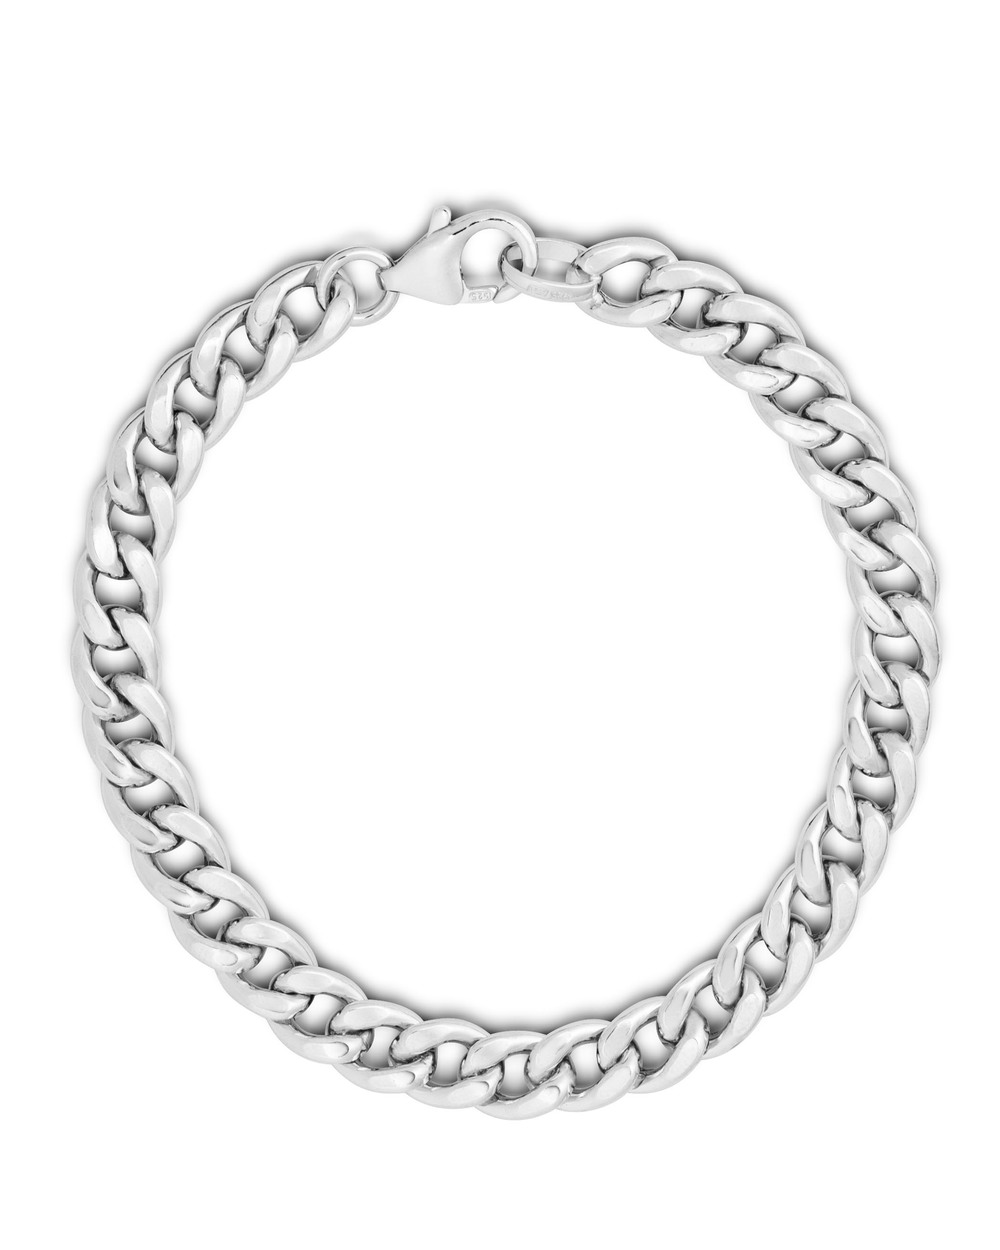 Anna Malou, Armband aus 925 Sterling Silber